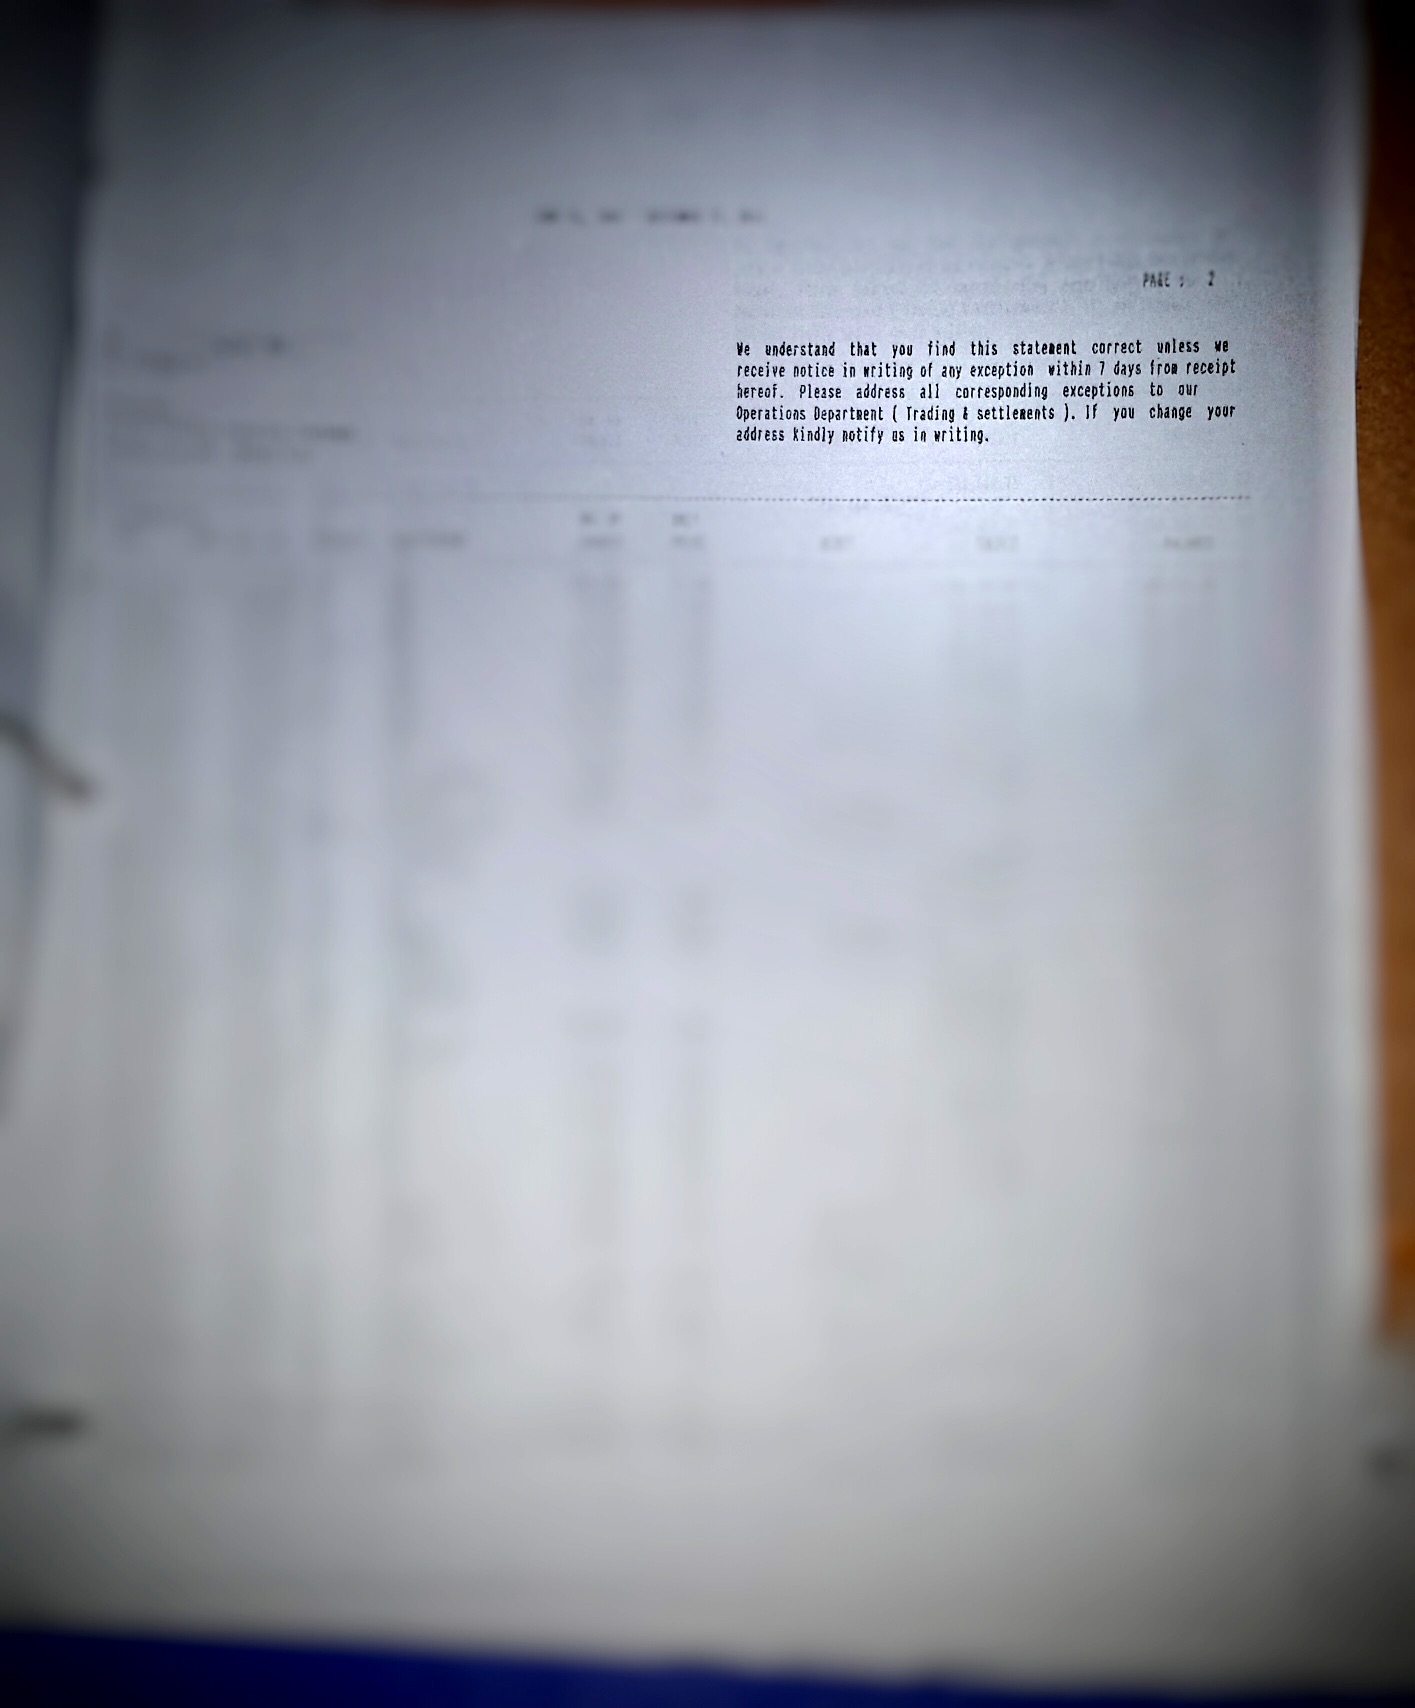 MANIPULATED STATEMENTS. The official Statement of Account of a client (above), shows transactions never authorized by the client, and was different from the SOAs sent to the client monthly by Valbuena, which she faked. Document sourced by Rappler